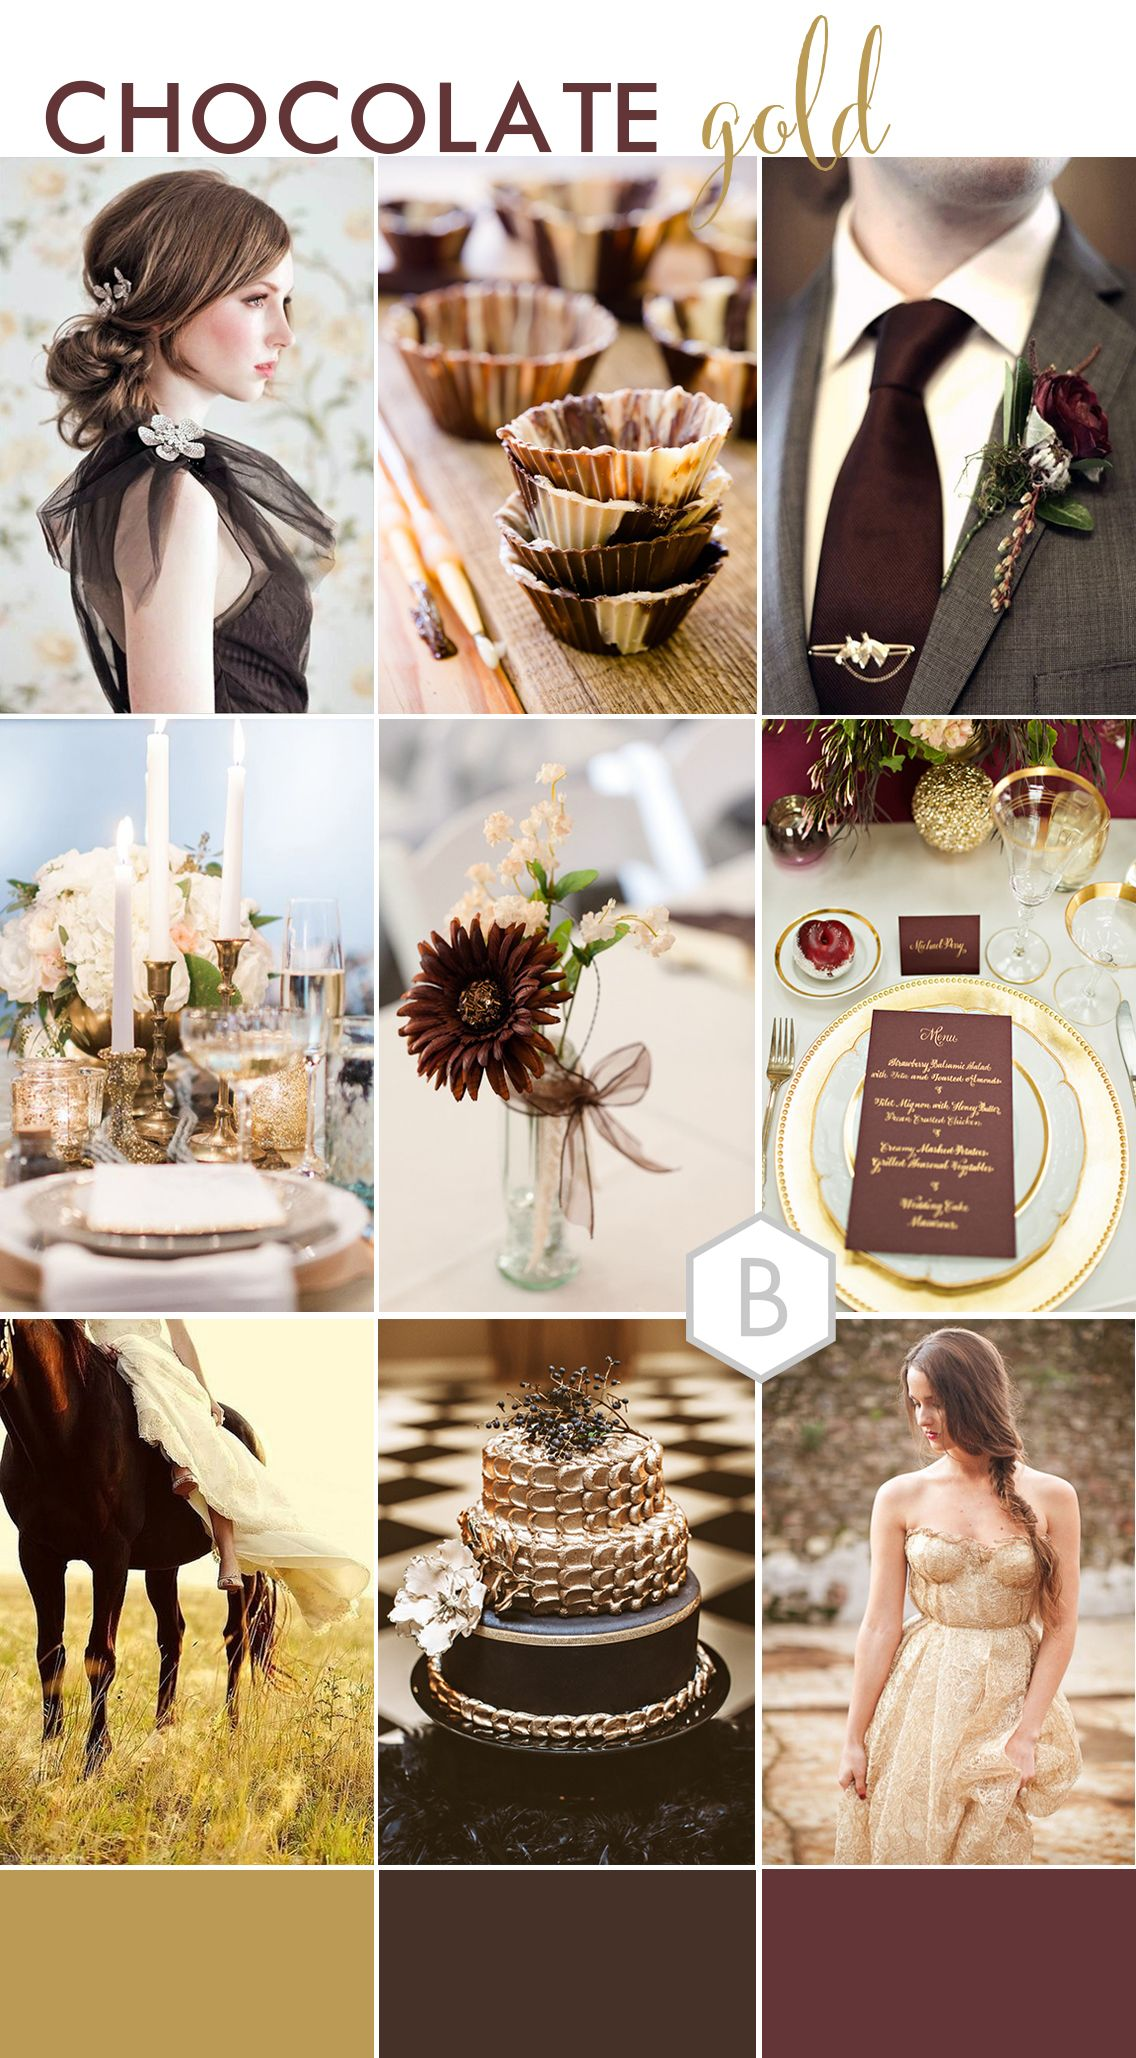 chocolate gold | wedding themes & moodboards in 2019